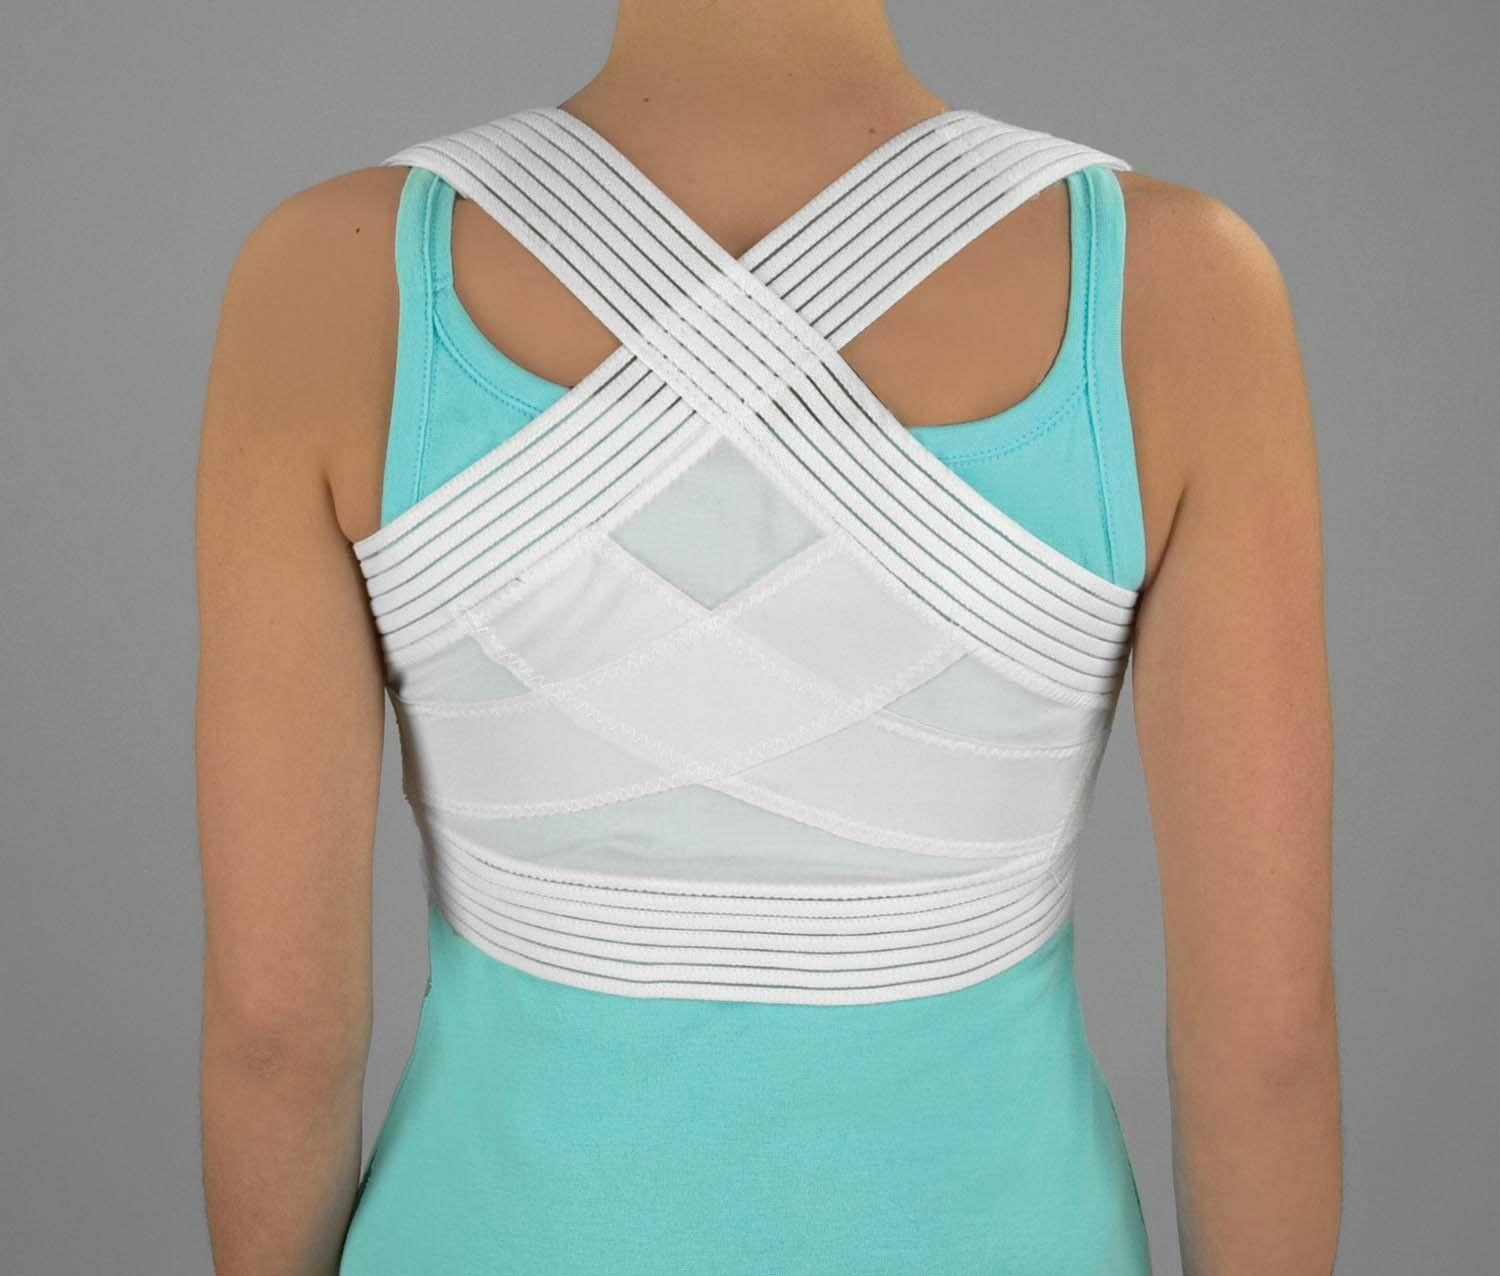 Posture Corrector Reinforced Criss Cross Back Support Shoulder Made in USA Health & Beauty